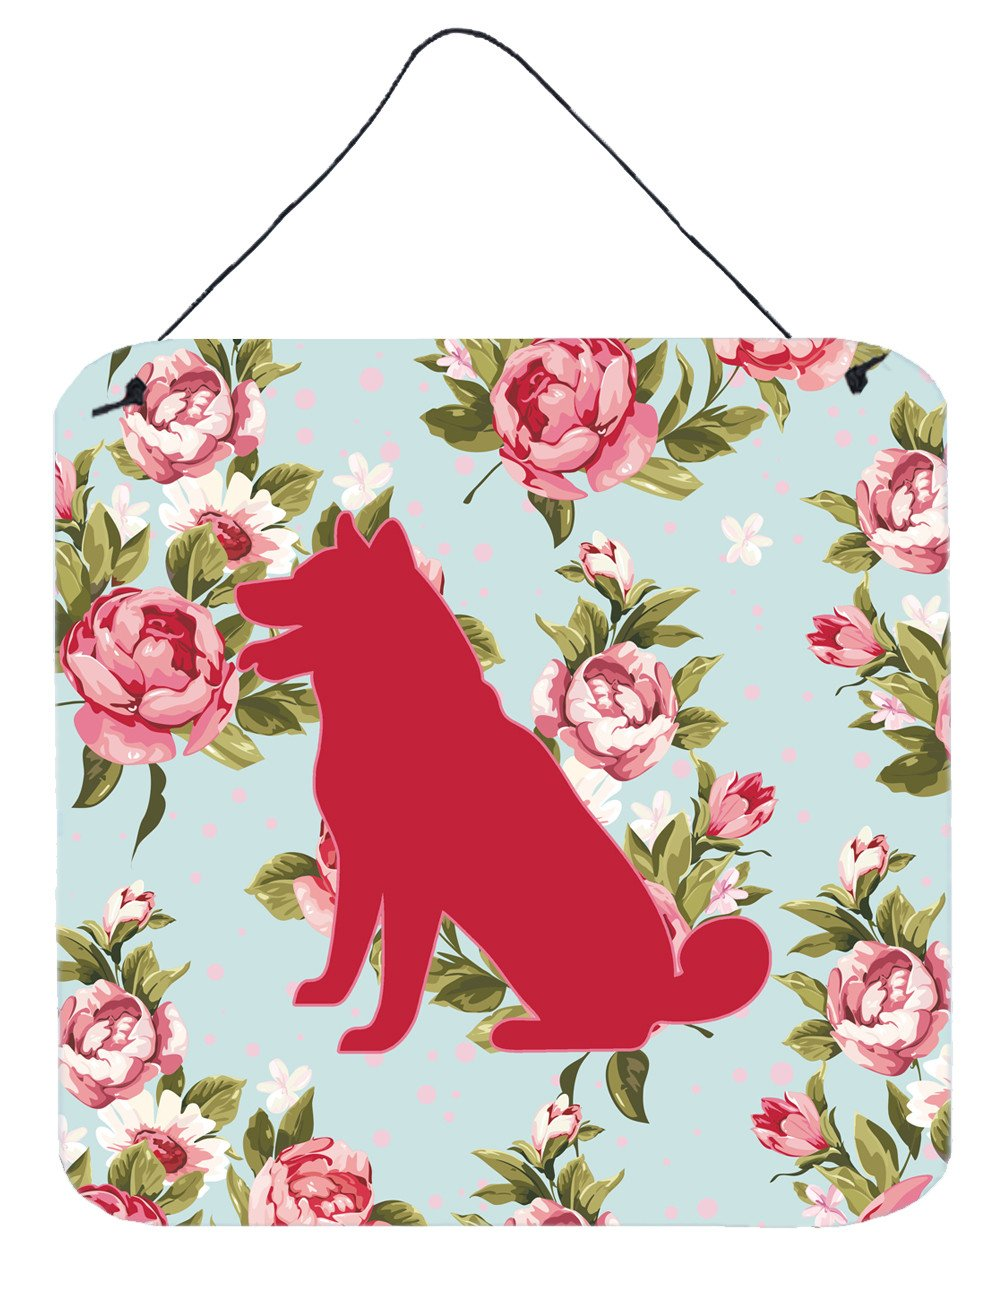 Shiba Inu Shabby Chic Blue Roses Wall or Door Hanging Prints BB1113 by Caroline's Treasures